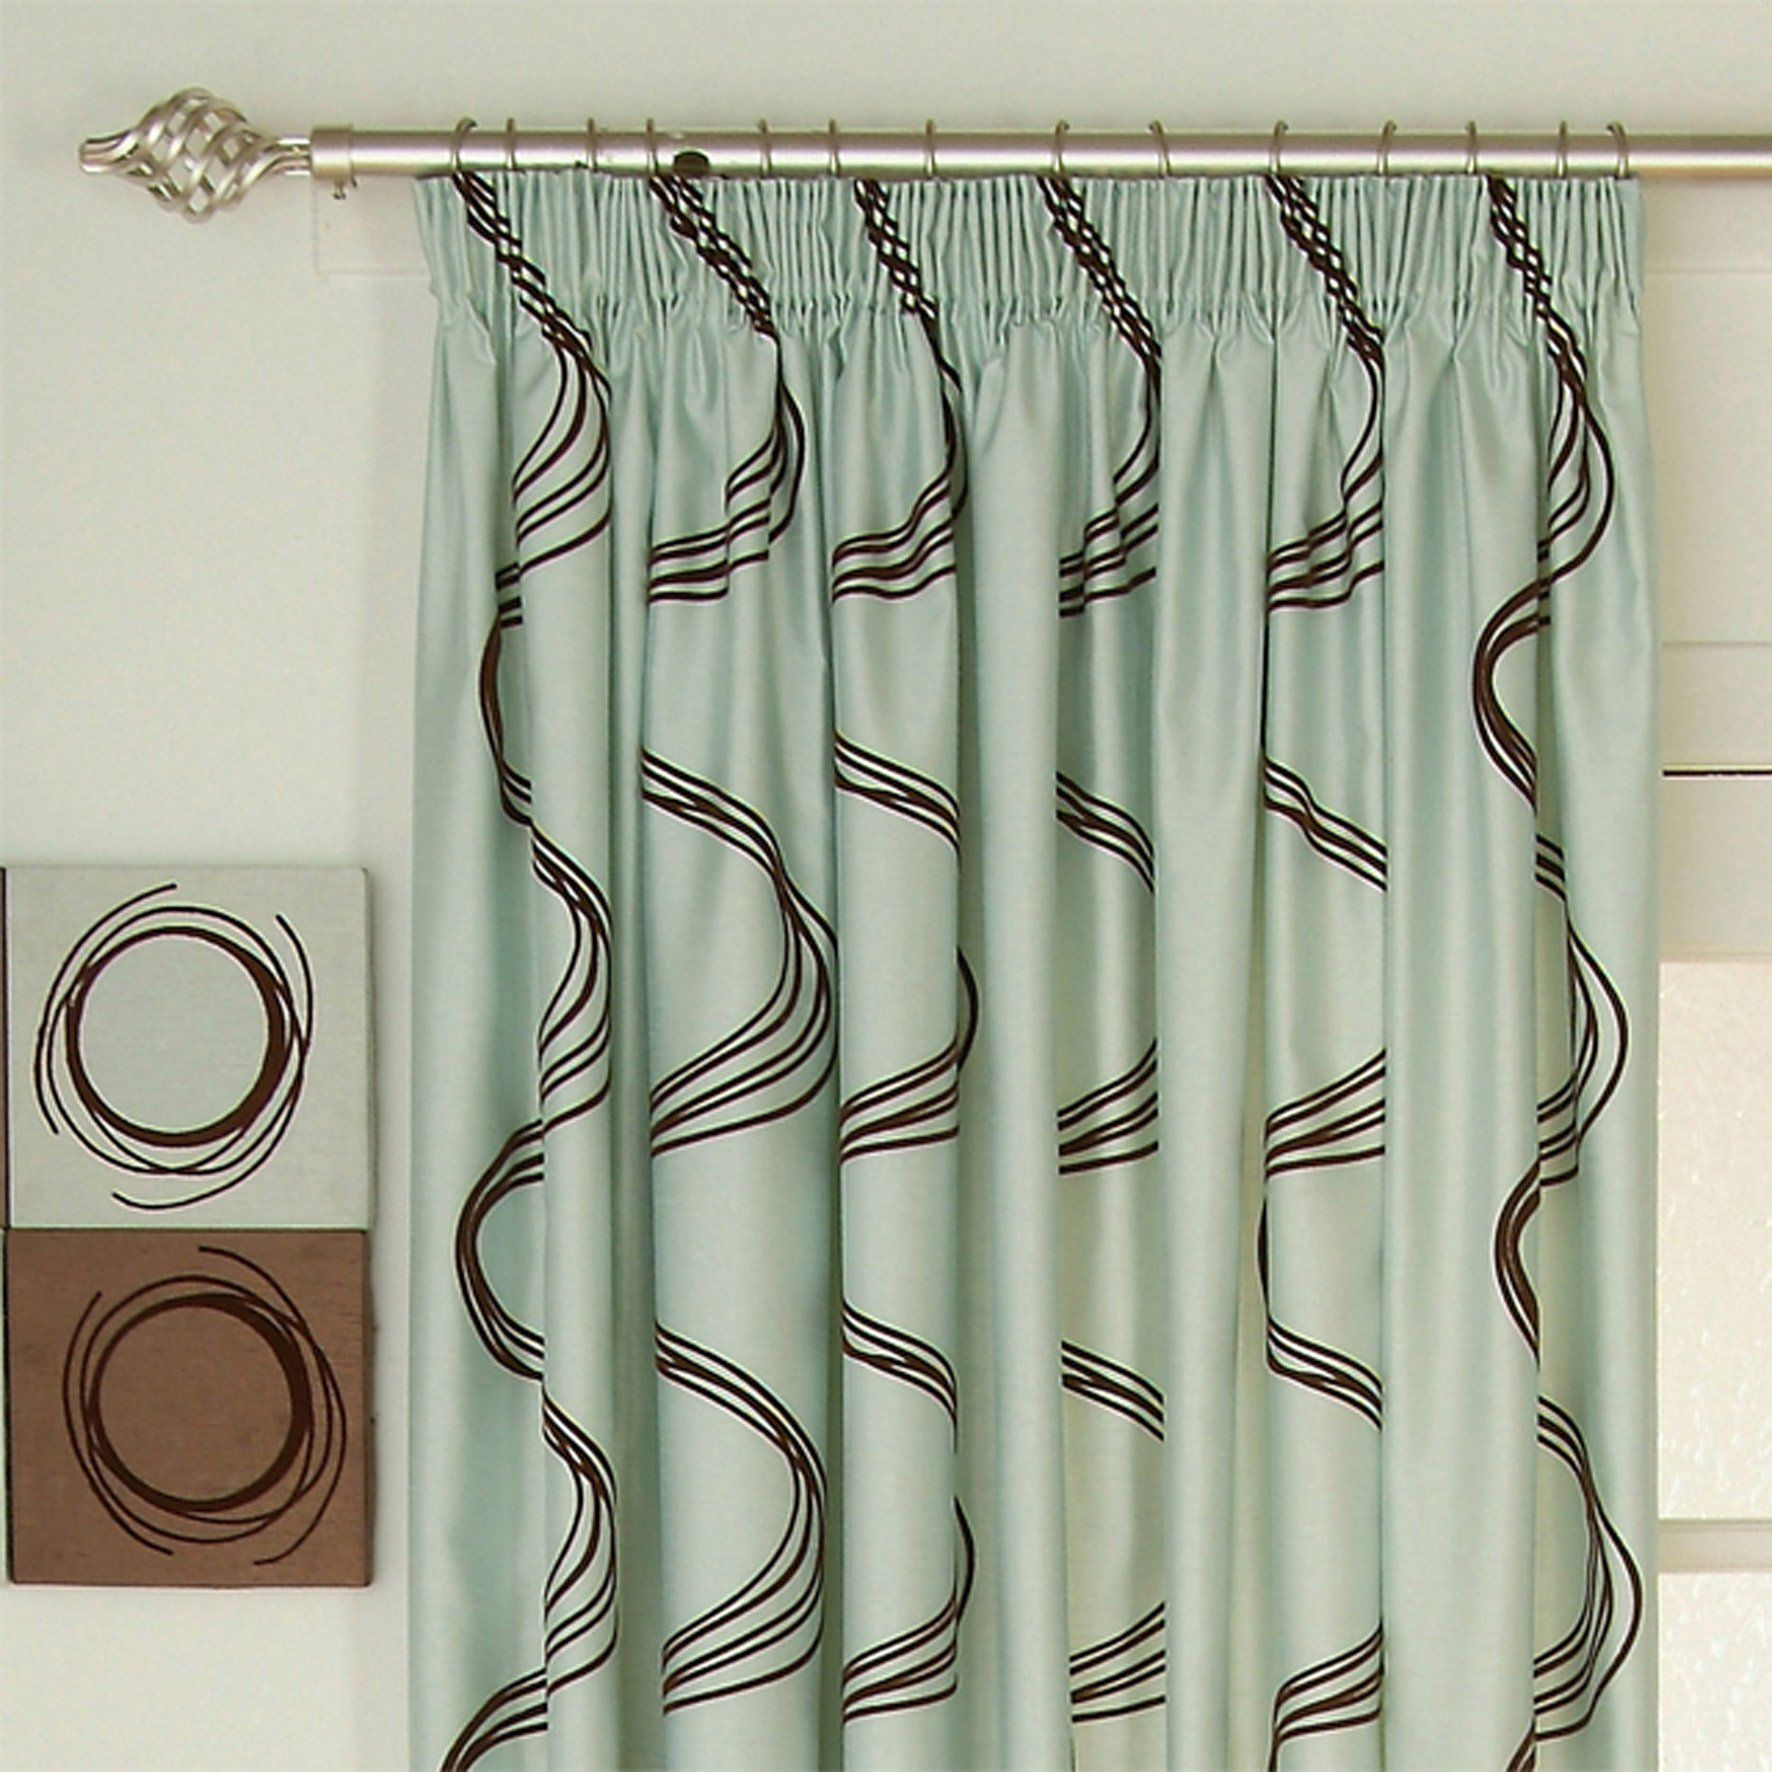 Each Curtain Has Small Folds At The Top That Are Gathered Closely Together To Resemble A Row Of Pencils Laid Si Latest Curtain Designs Curtain Designs Curtains